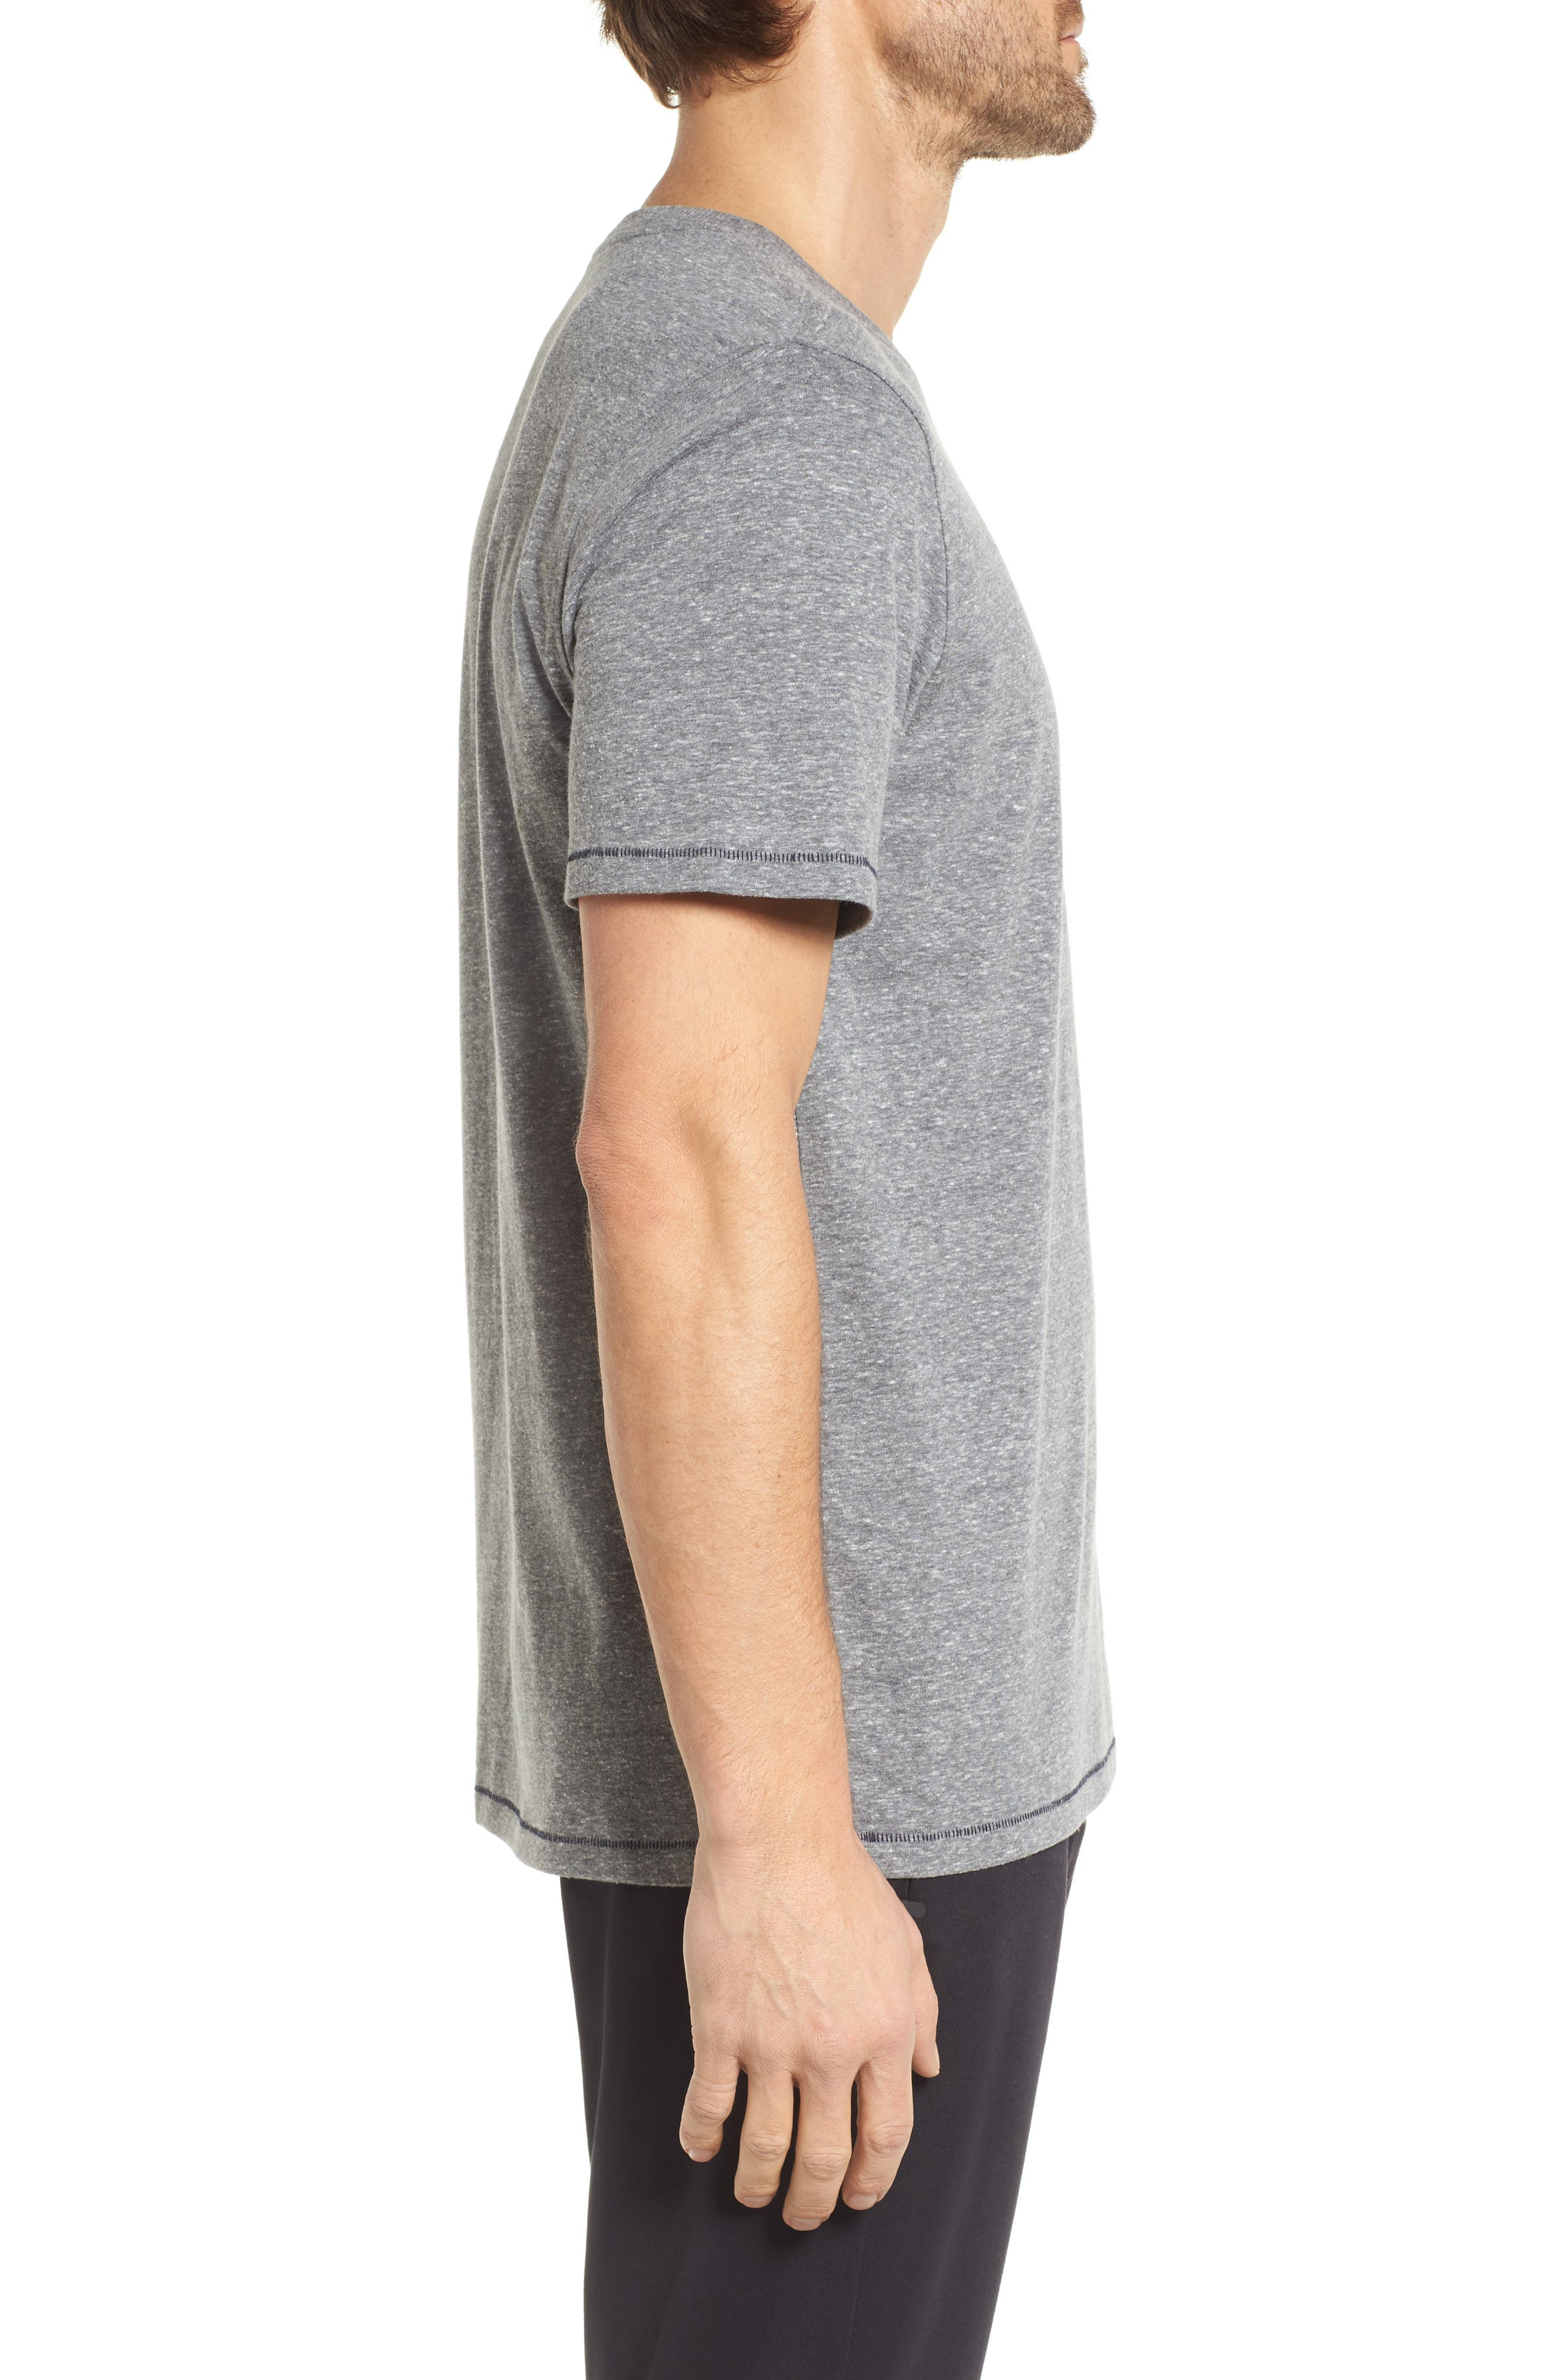 Benjamin Crewneck T-Shirt,                             Alternate thumbnail 3, color,                             Grey Heather